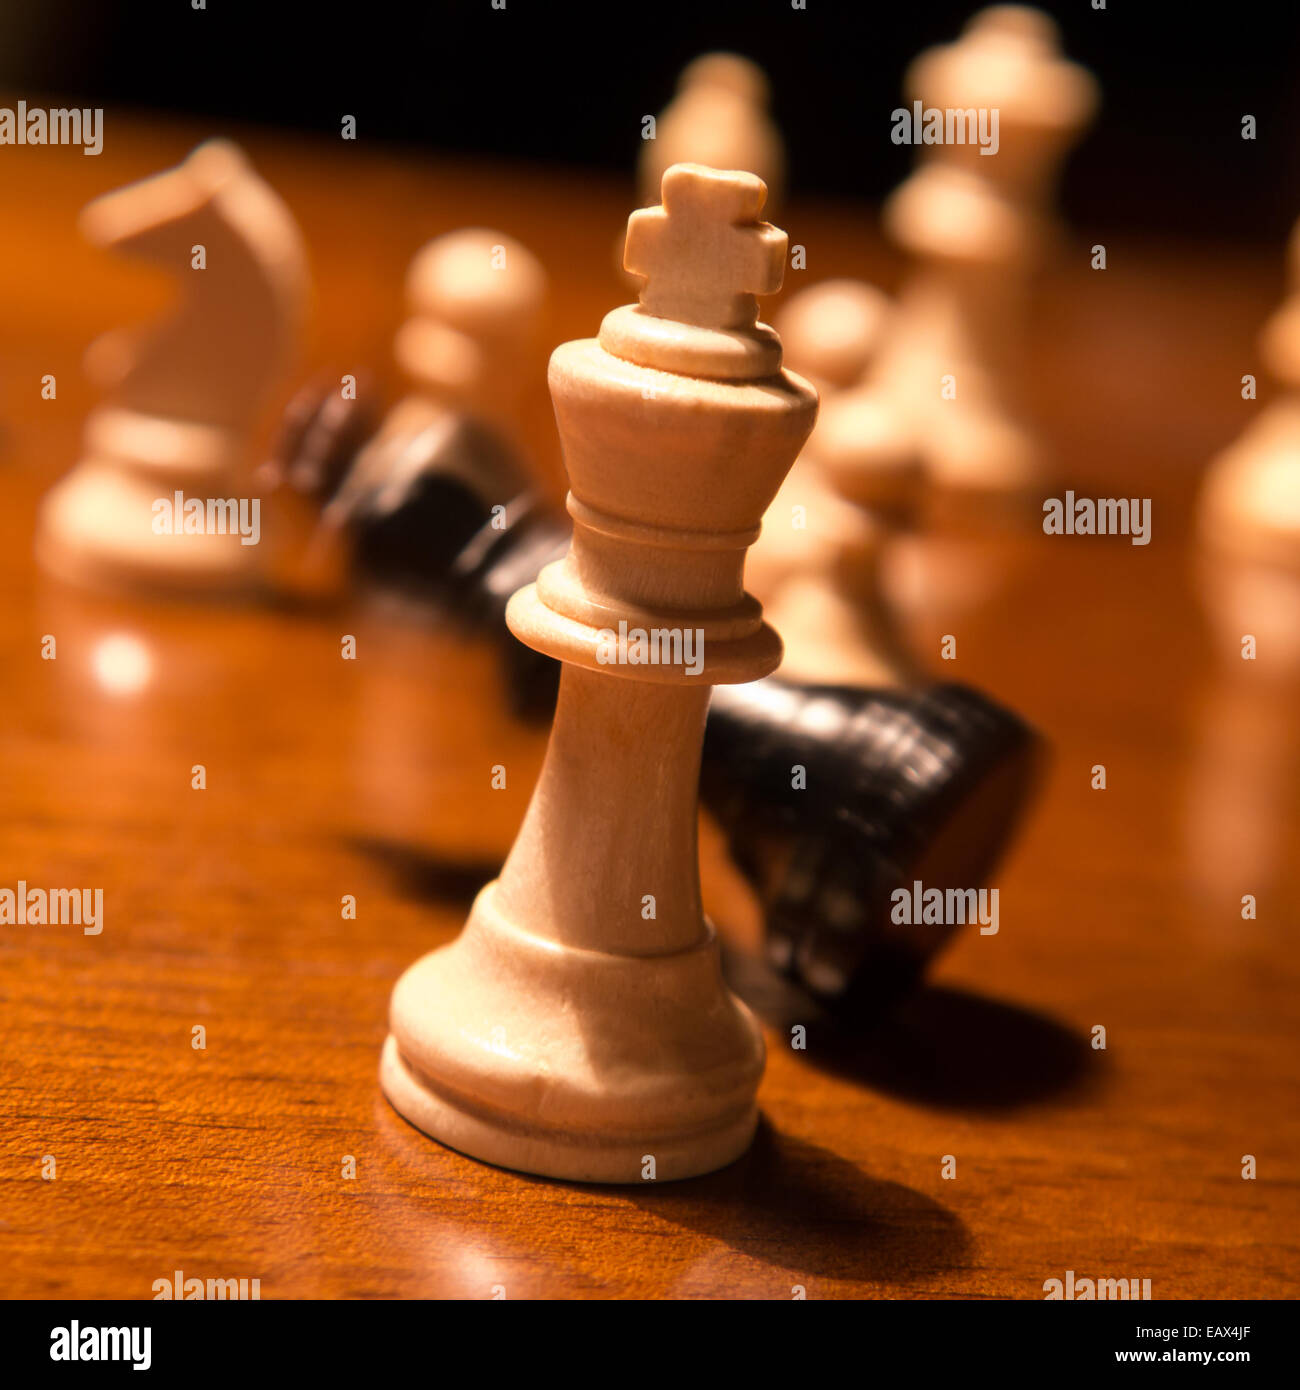 checkmate, falling chess king - Stock Image